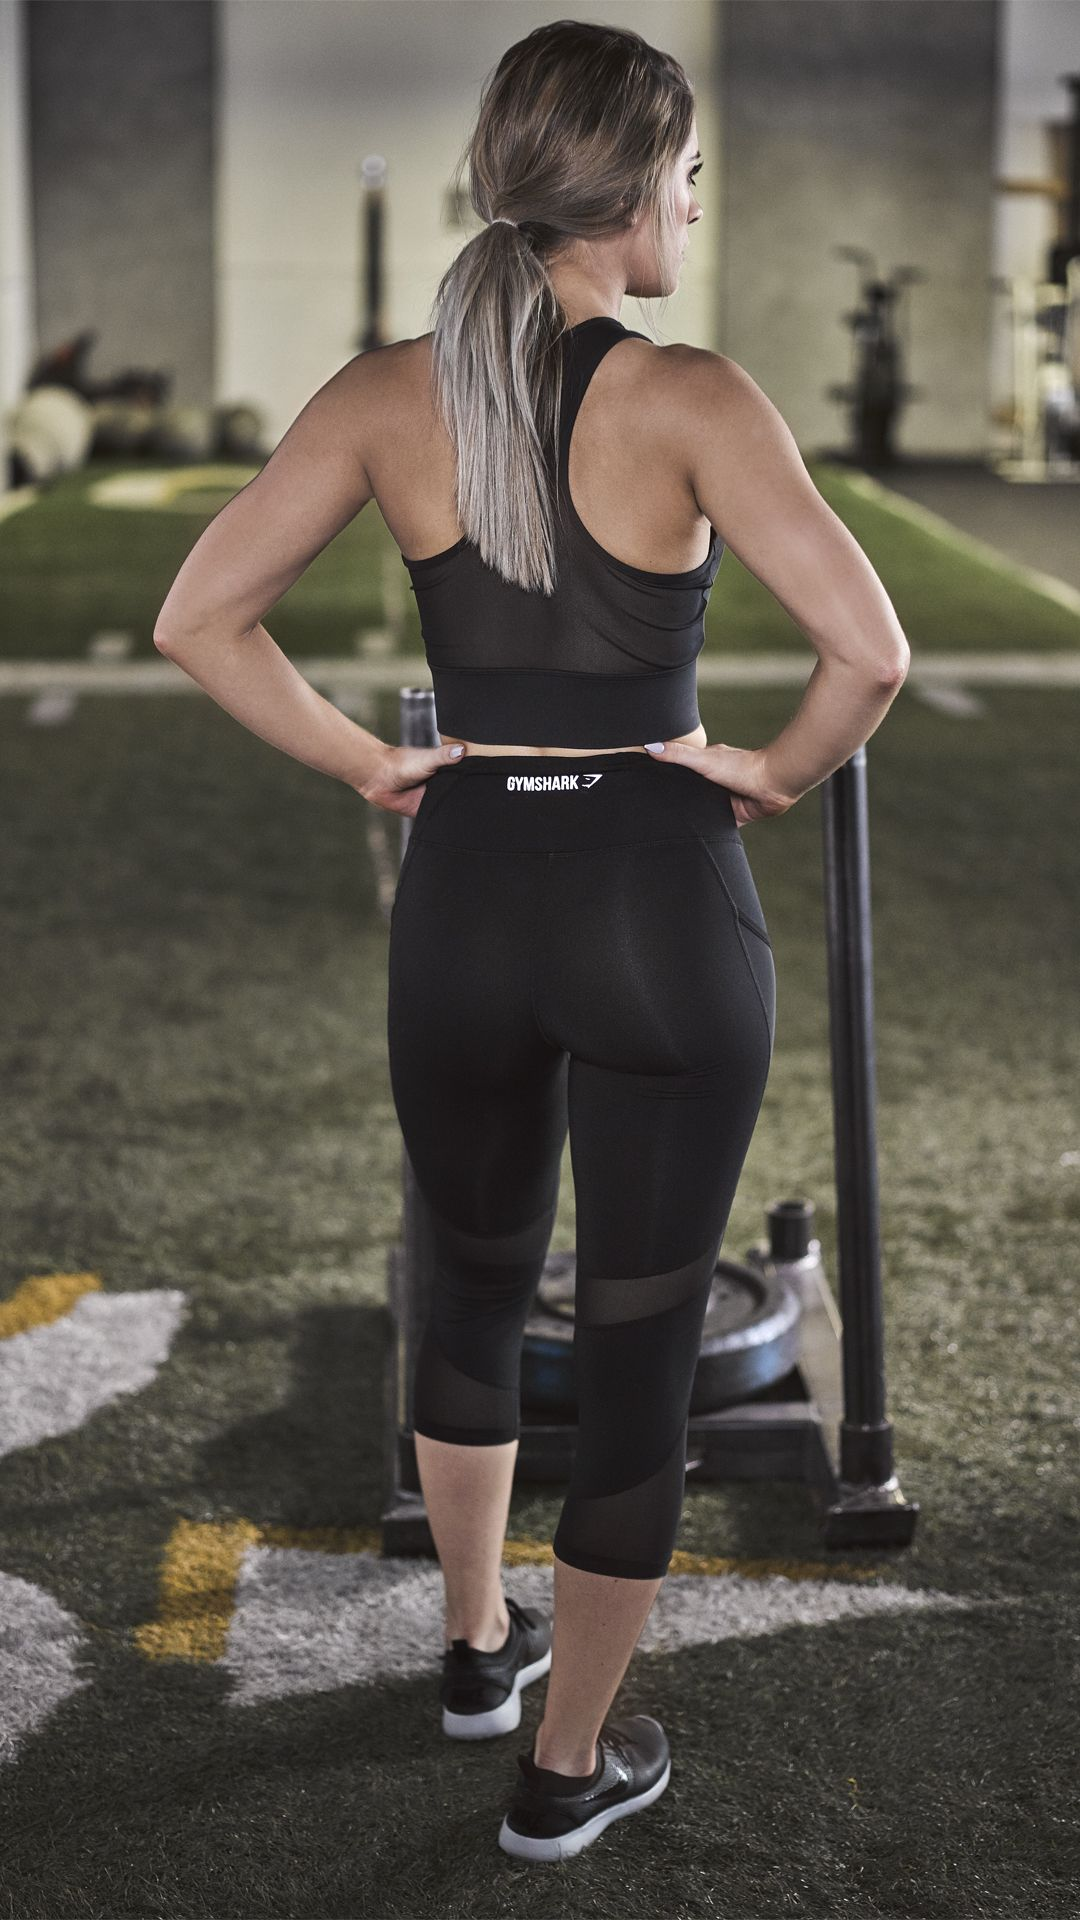 a6e0d088e025b The Sleek Sculpture Cropped leggings, ready to give you the coolest, most  comfortable workout.